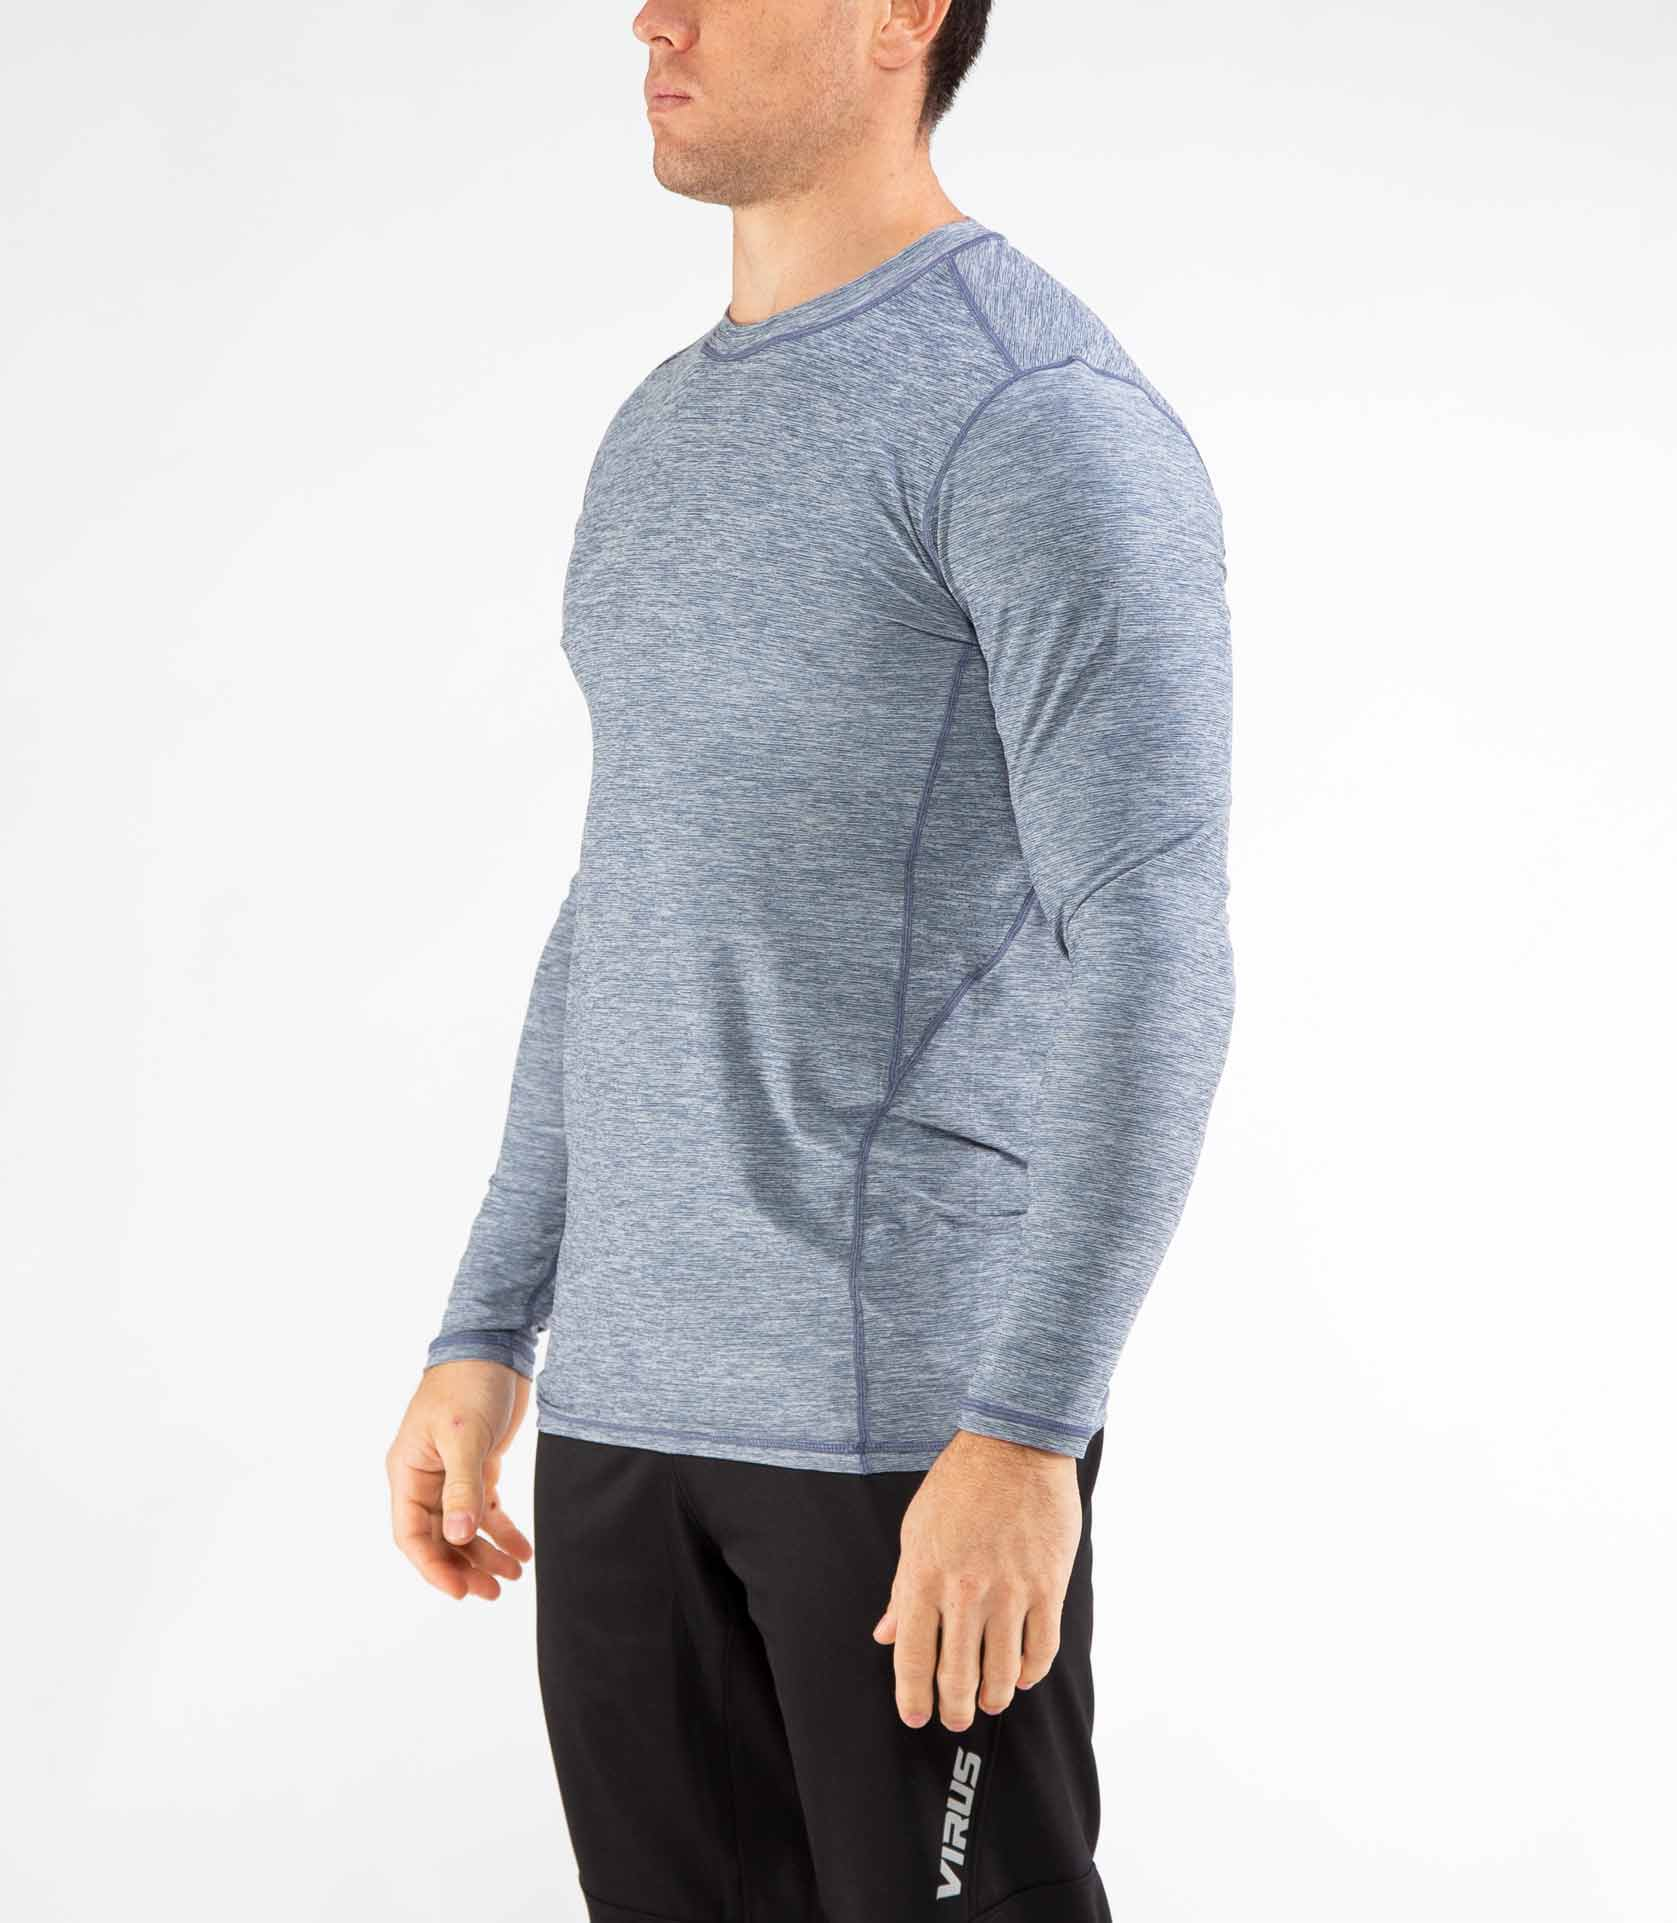 Co33   Stay Cool Hydro 2.0 Long Sleeve Functional Fit Top